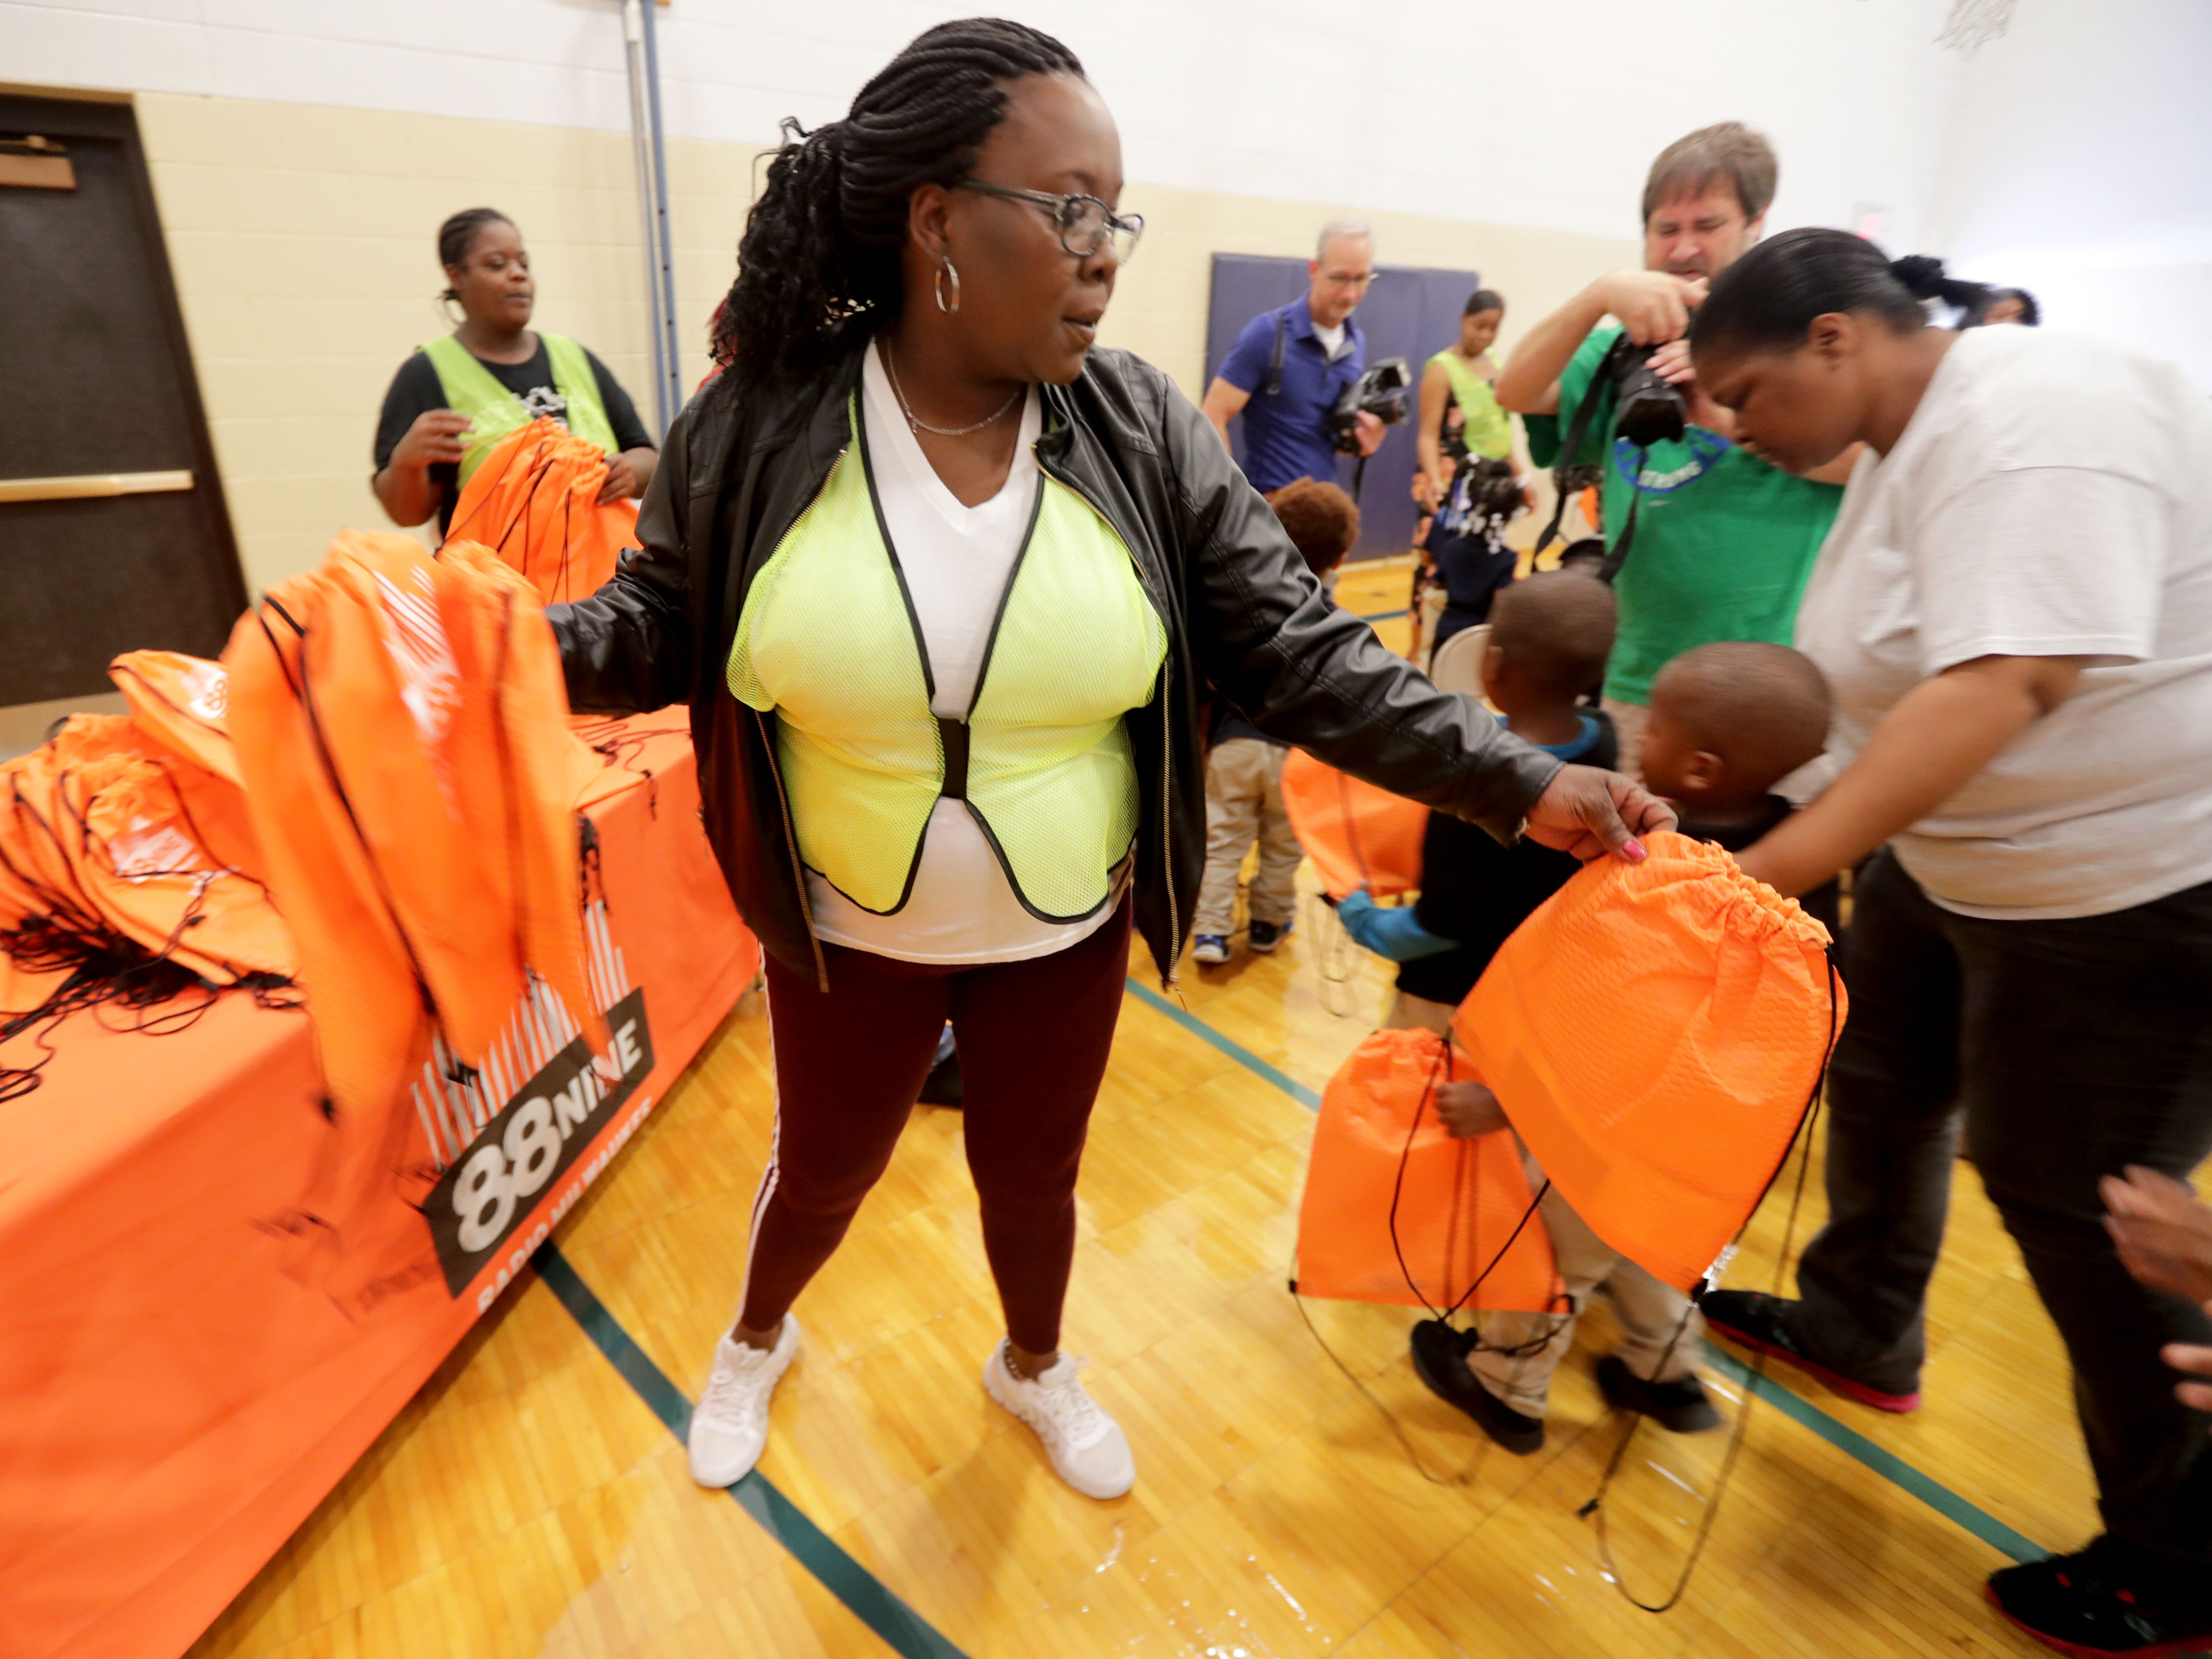 Volunteer Yulene Smith hands out backpacks to students at Dr. Martin Luther King Jr. Elementary School, 3275 N. 3rd St., on Wednesday. The backpacks will be filled with donated school supplies.